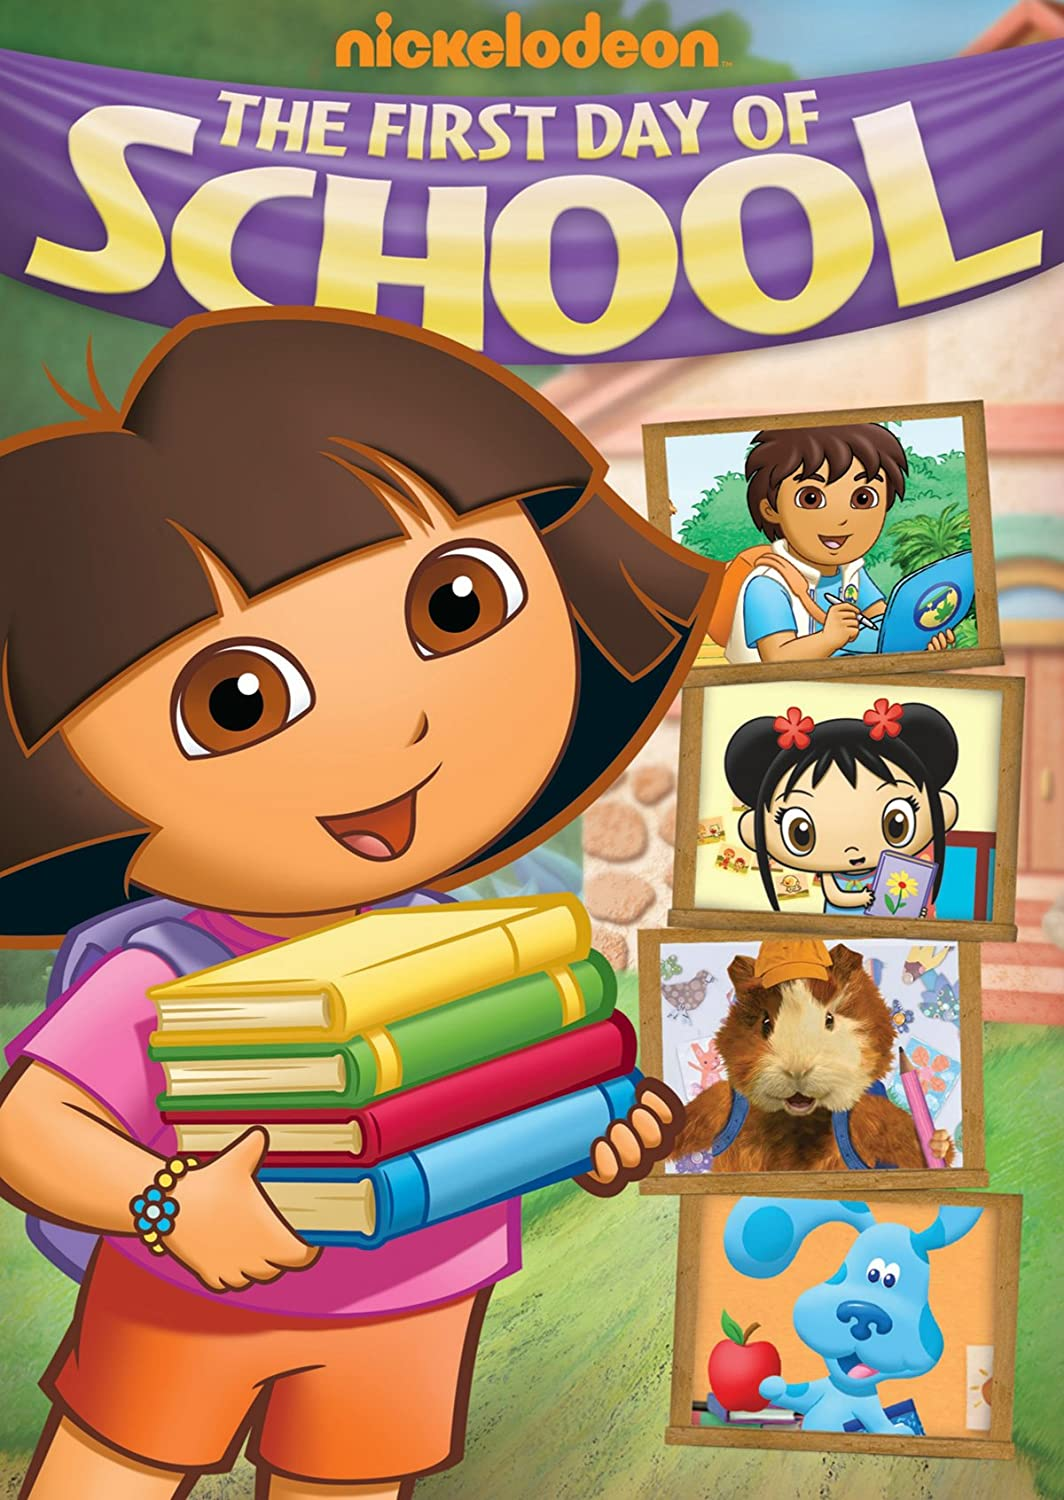 http://www.amazon.com/Nick-Jr-Favorites-First-School/dp/B003IB0FU8/